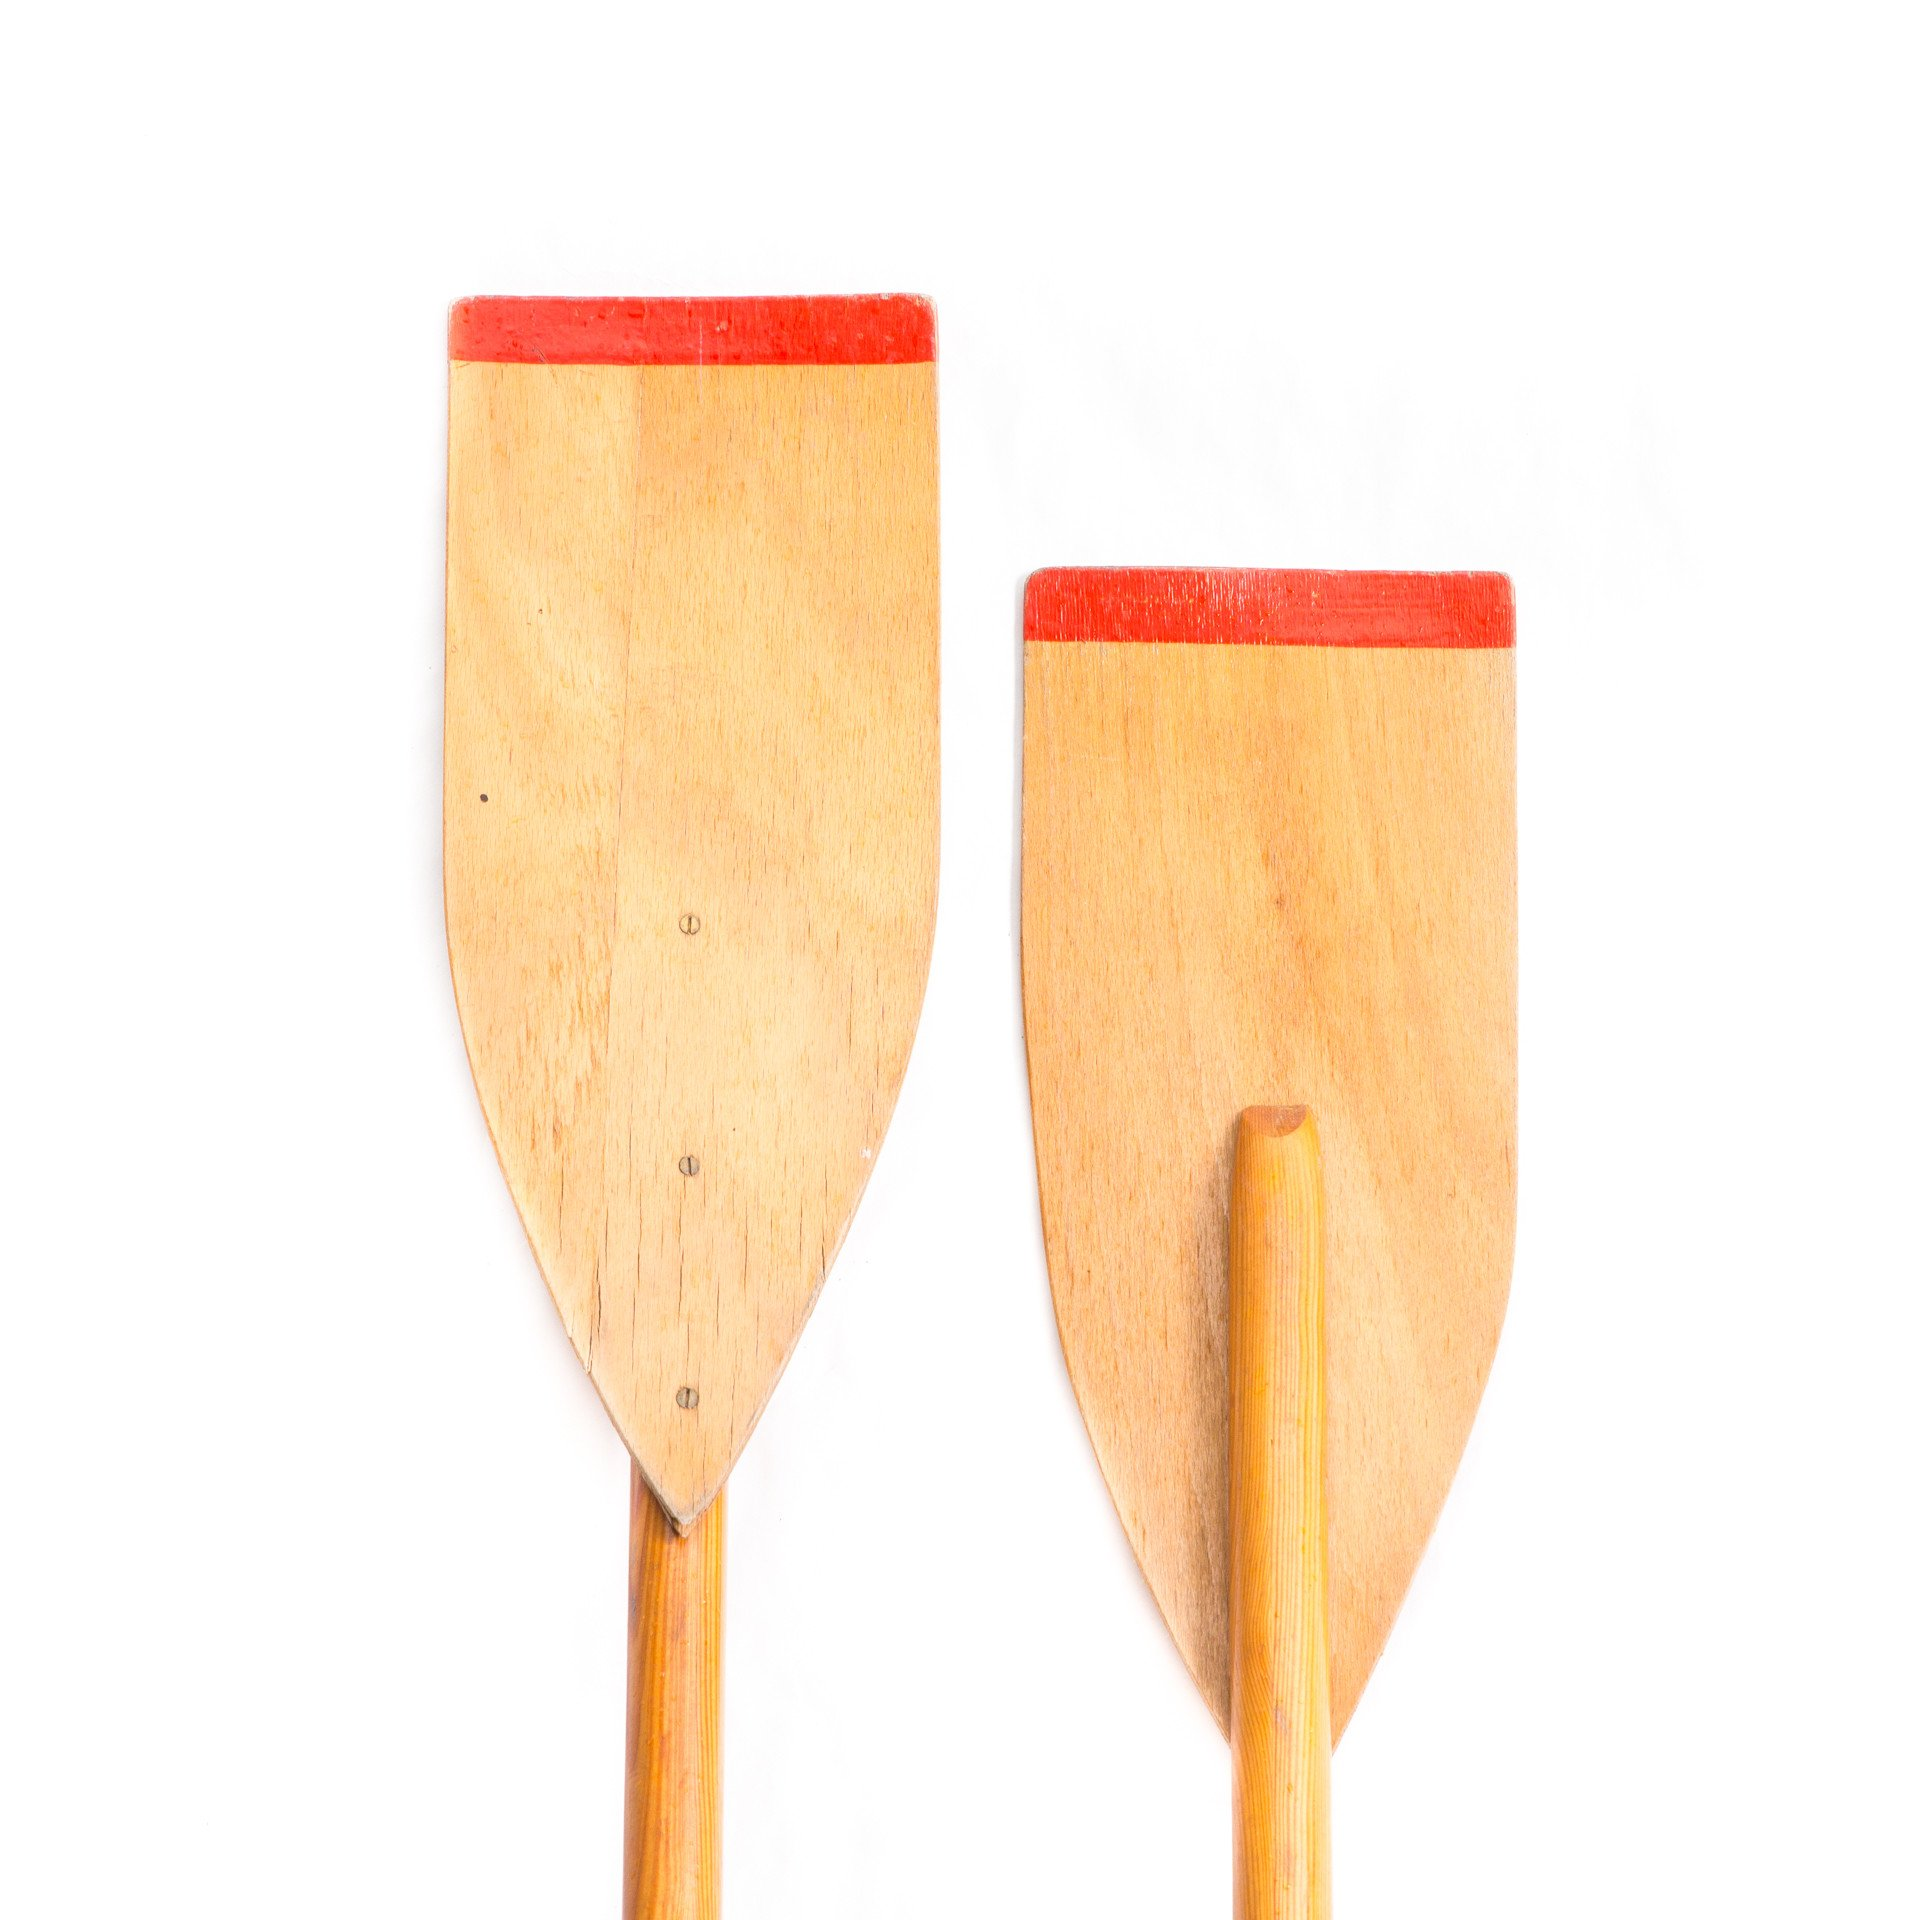 Pair of Oars, 1970s - 465951 - photo